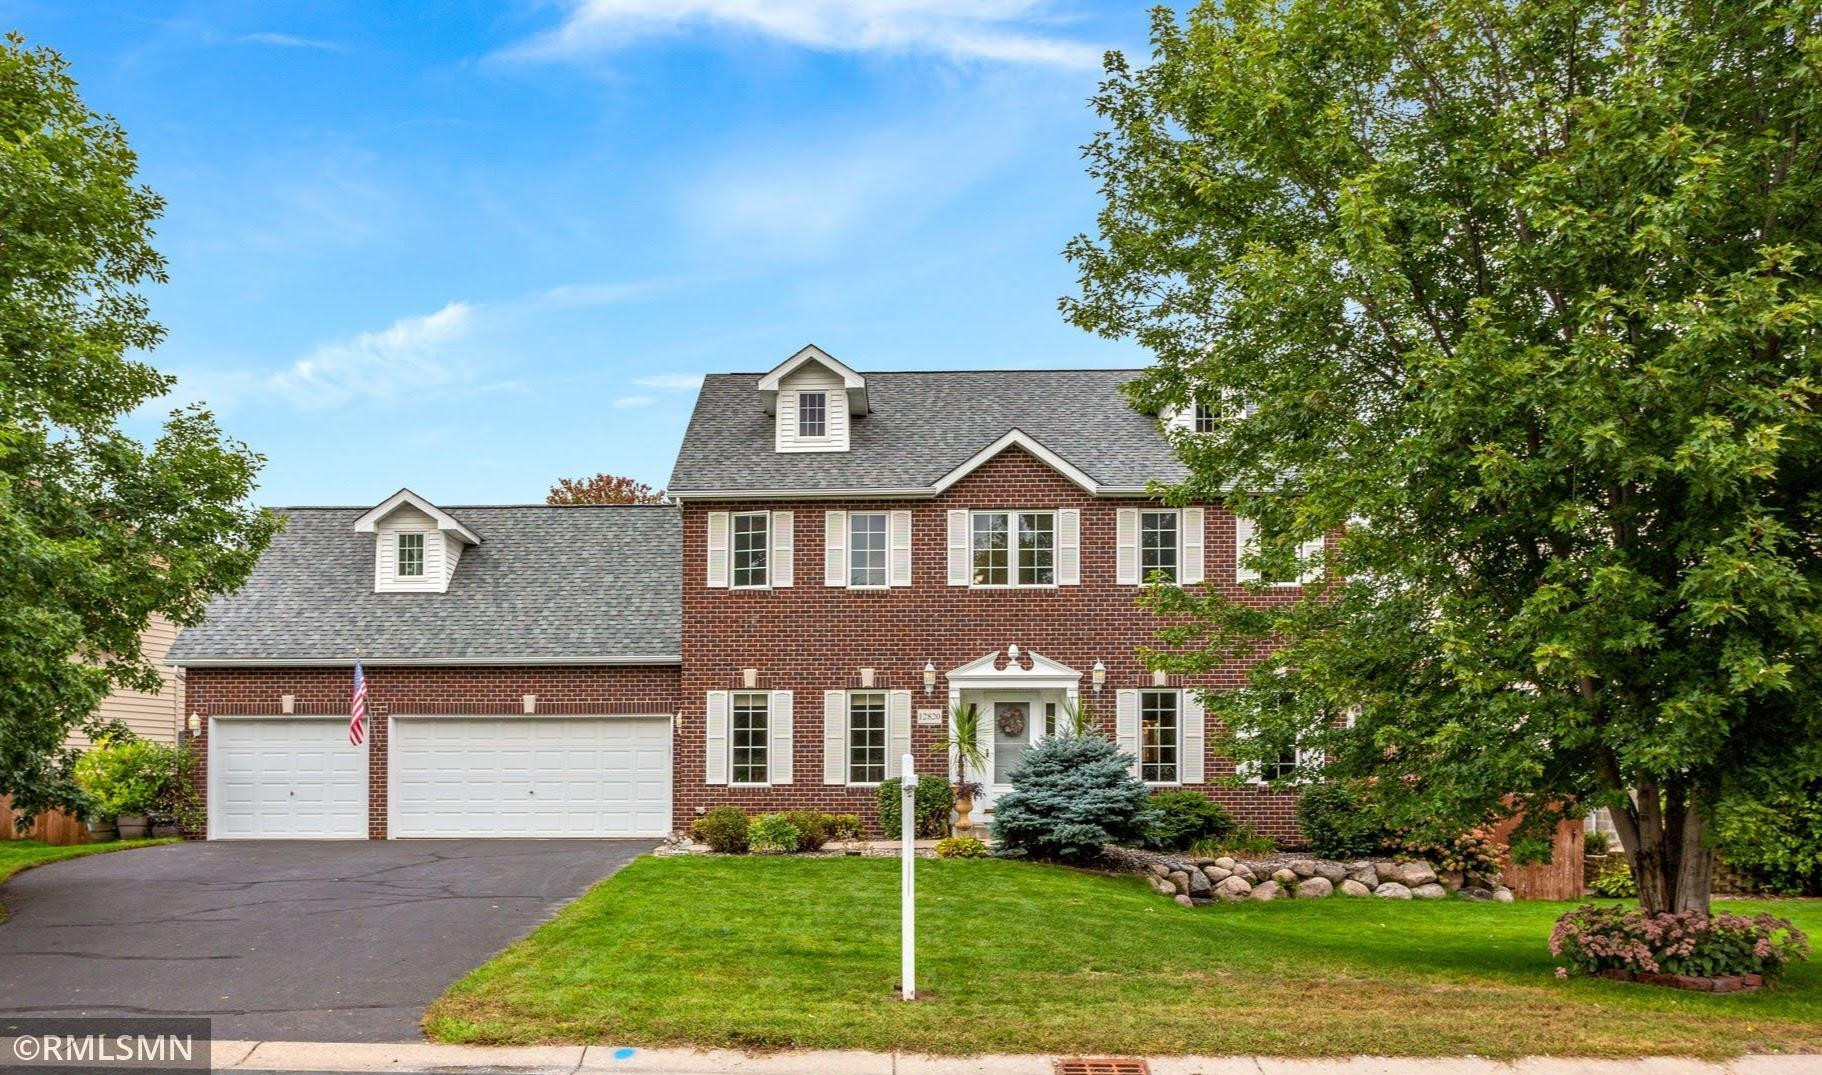 Splendid Colonial-Style, 5BR, 4BA, 3 GAR Home with LOTS of Entertaining Spaces!